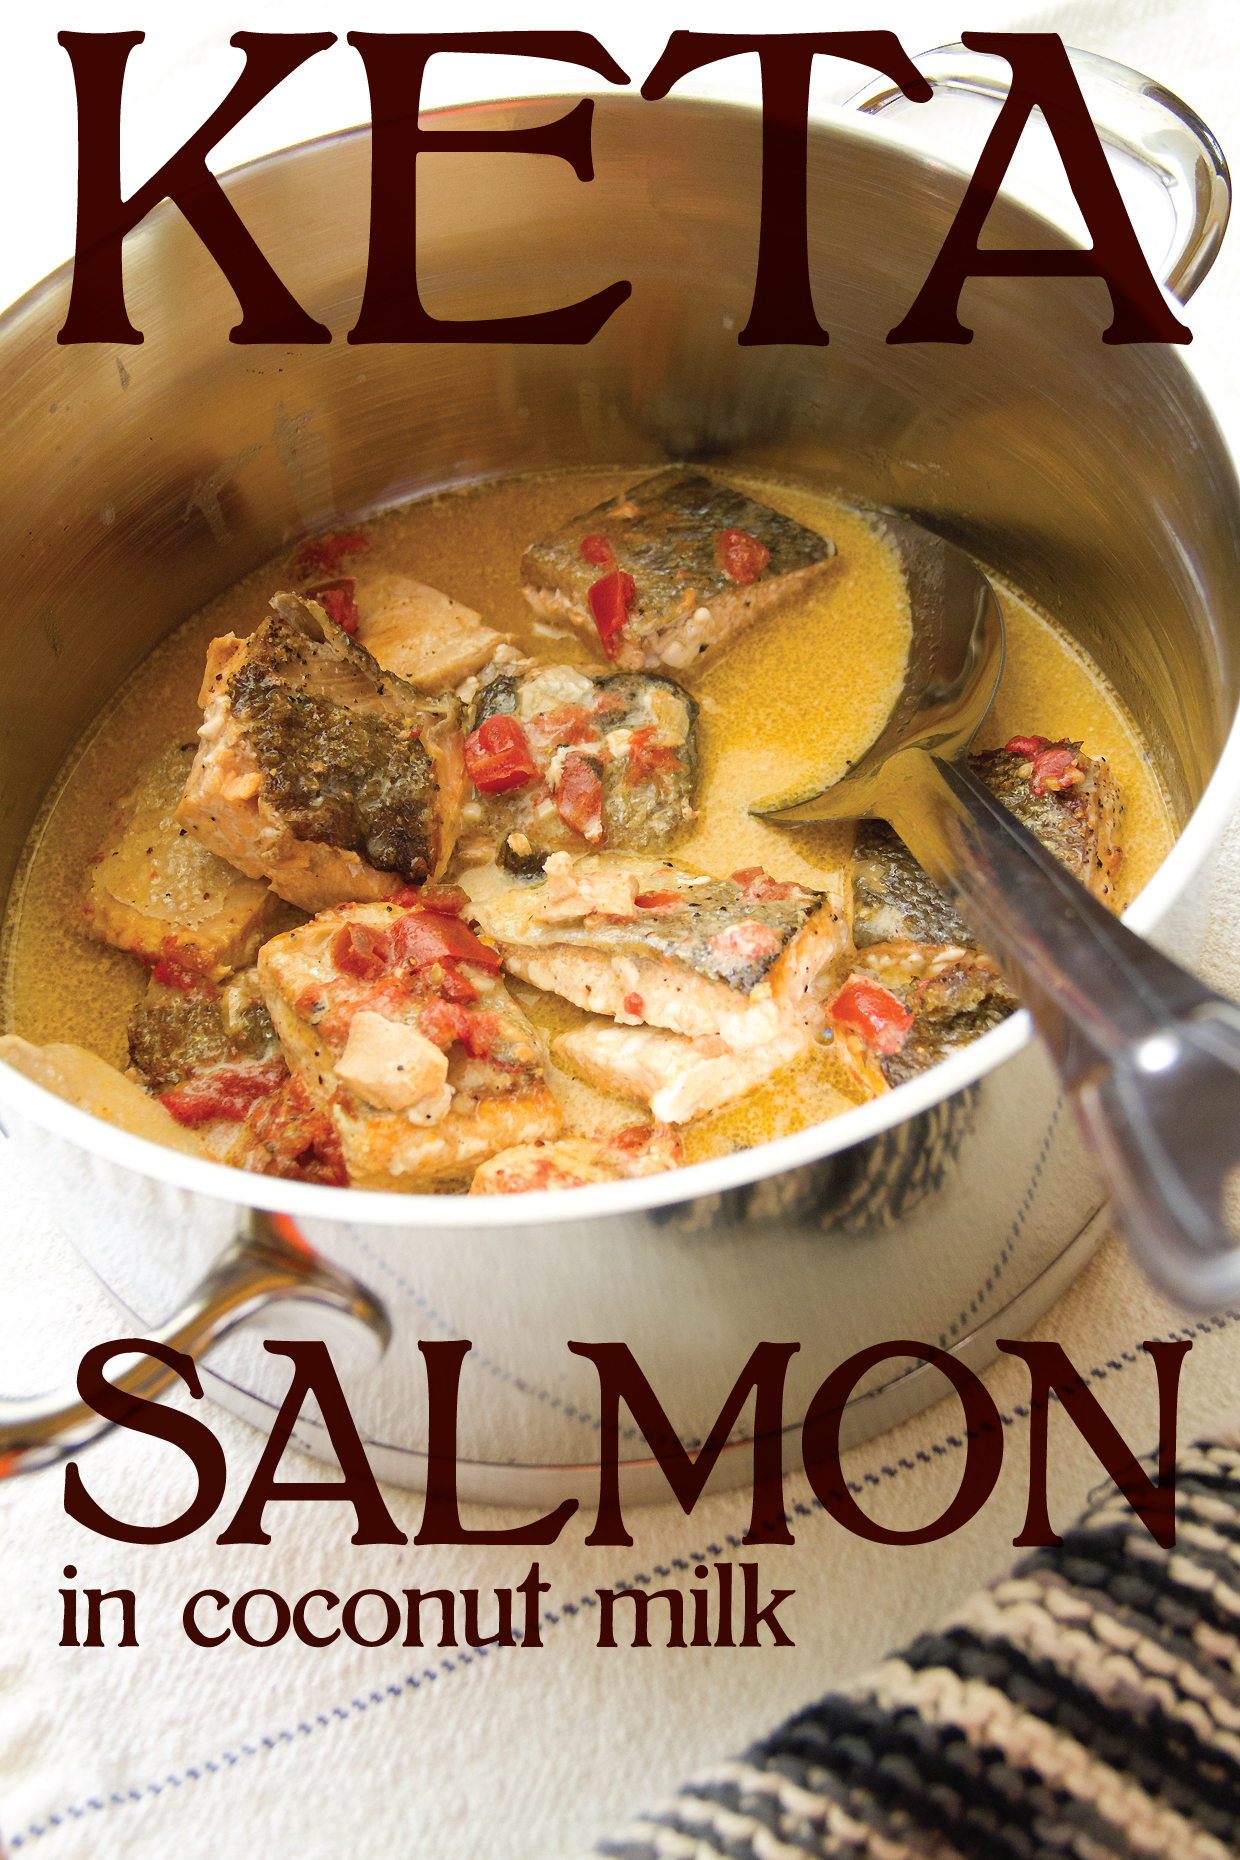 Chum salmon: cooking recipe with photo 96